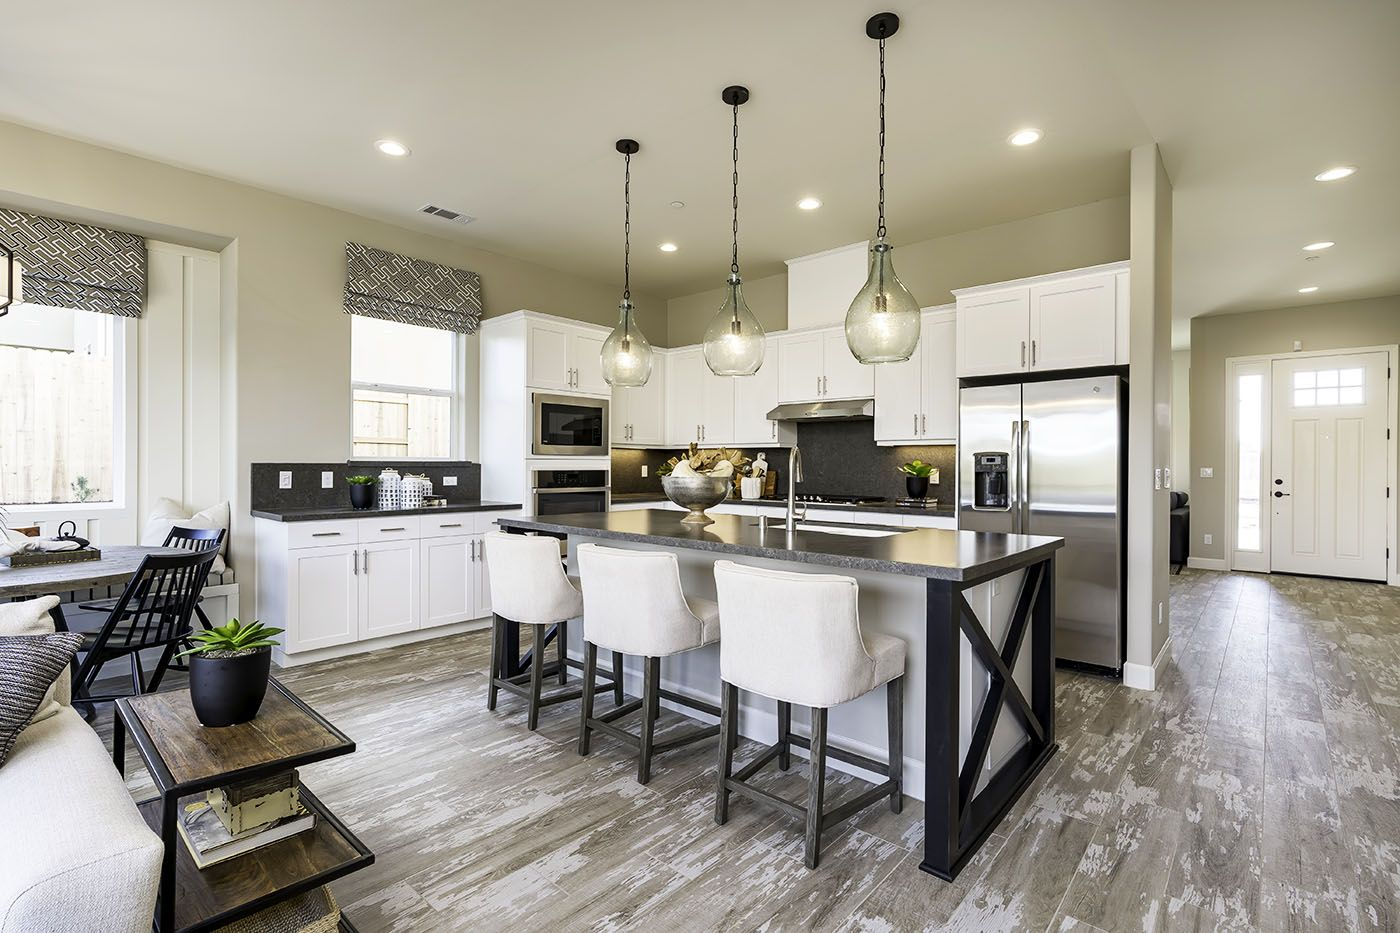 Kitchen featured in the Devonshire By Coastal Community Builders in Santa Barbara, CA